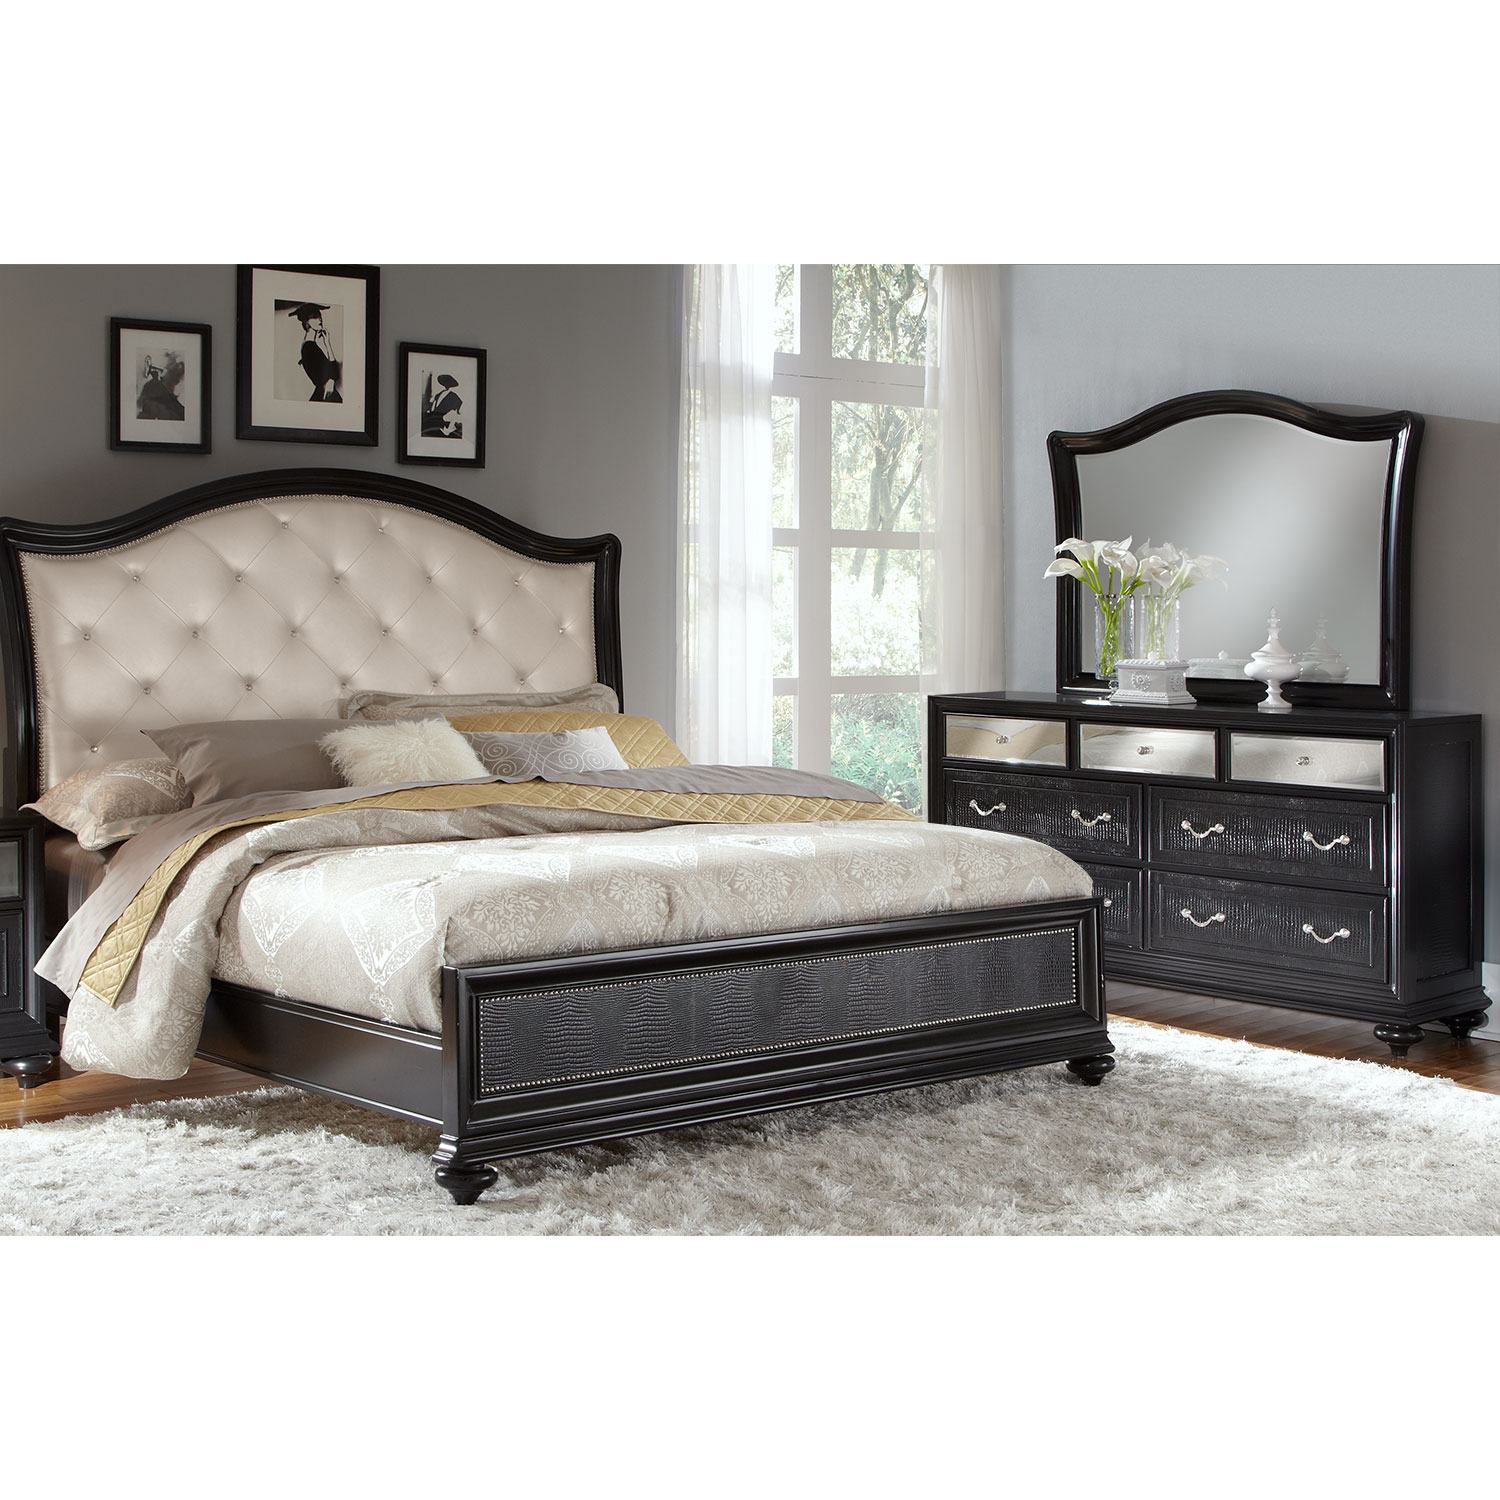 [Marilyn 5 Pc. King Bedroom]